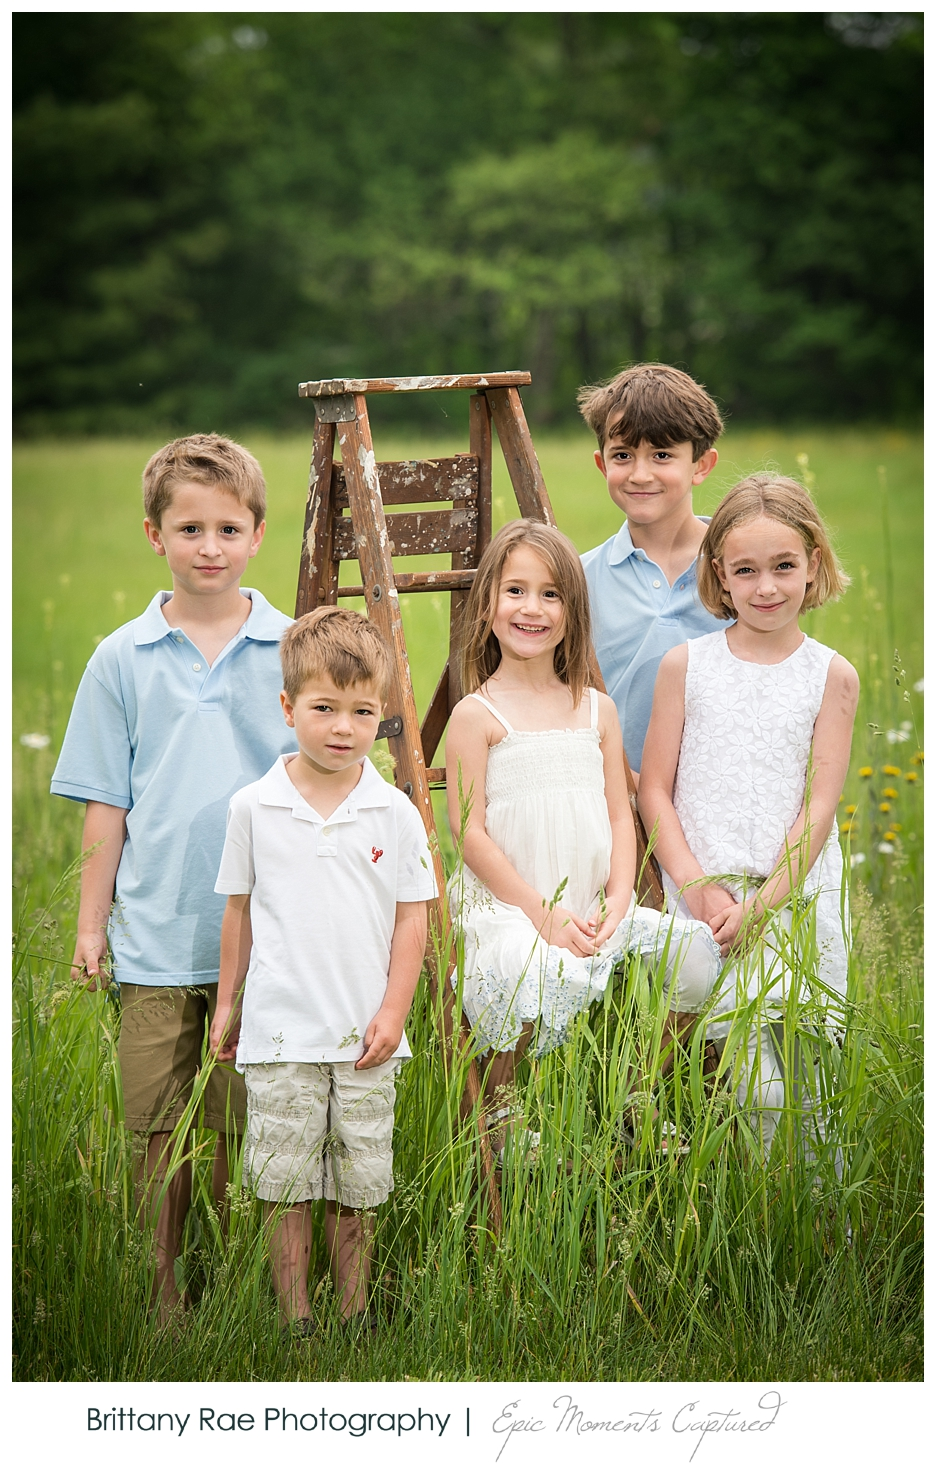 New Hampshire Family Portraits - Kids on a ladder in flowers